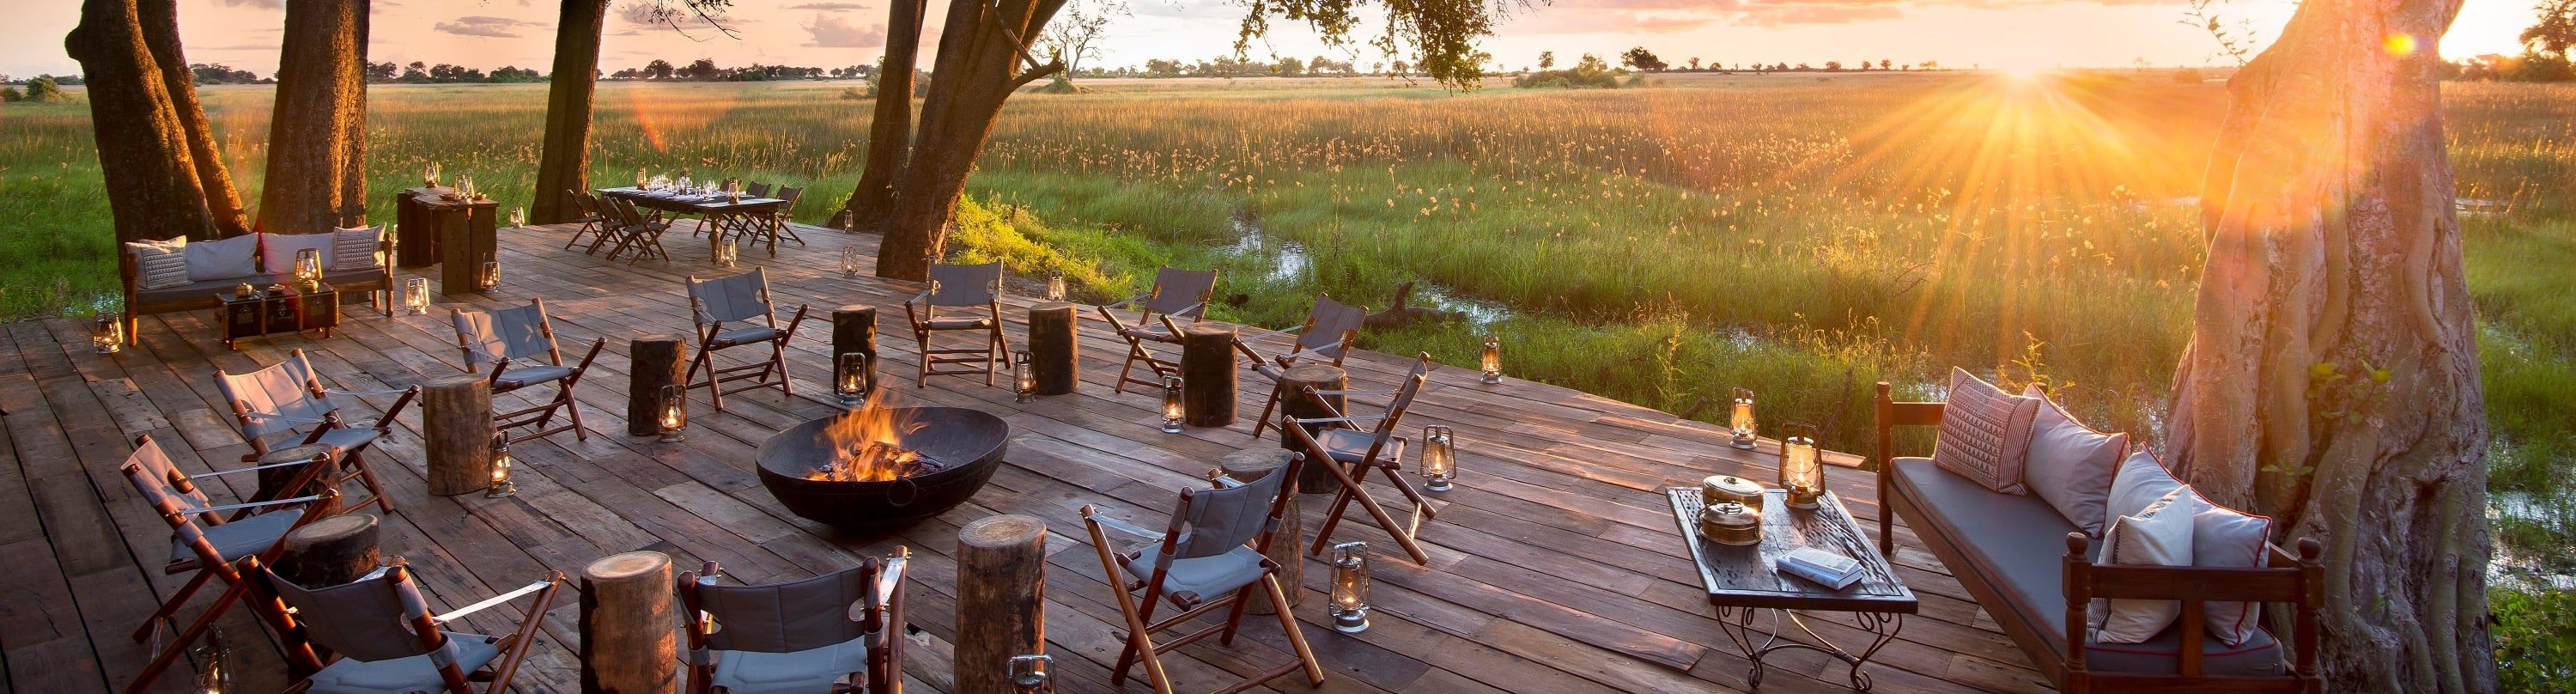 Located in the northern part of Botswana's famed Okavango Delta, Duba Plains lies just north of the Moremi Game Reserve. This exclusive Camp is located on a secluded island, only accessible by plane for most of the year.